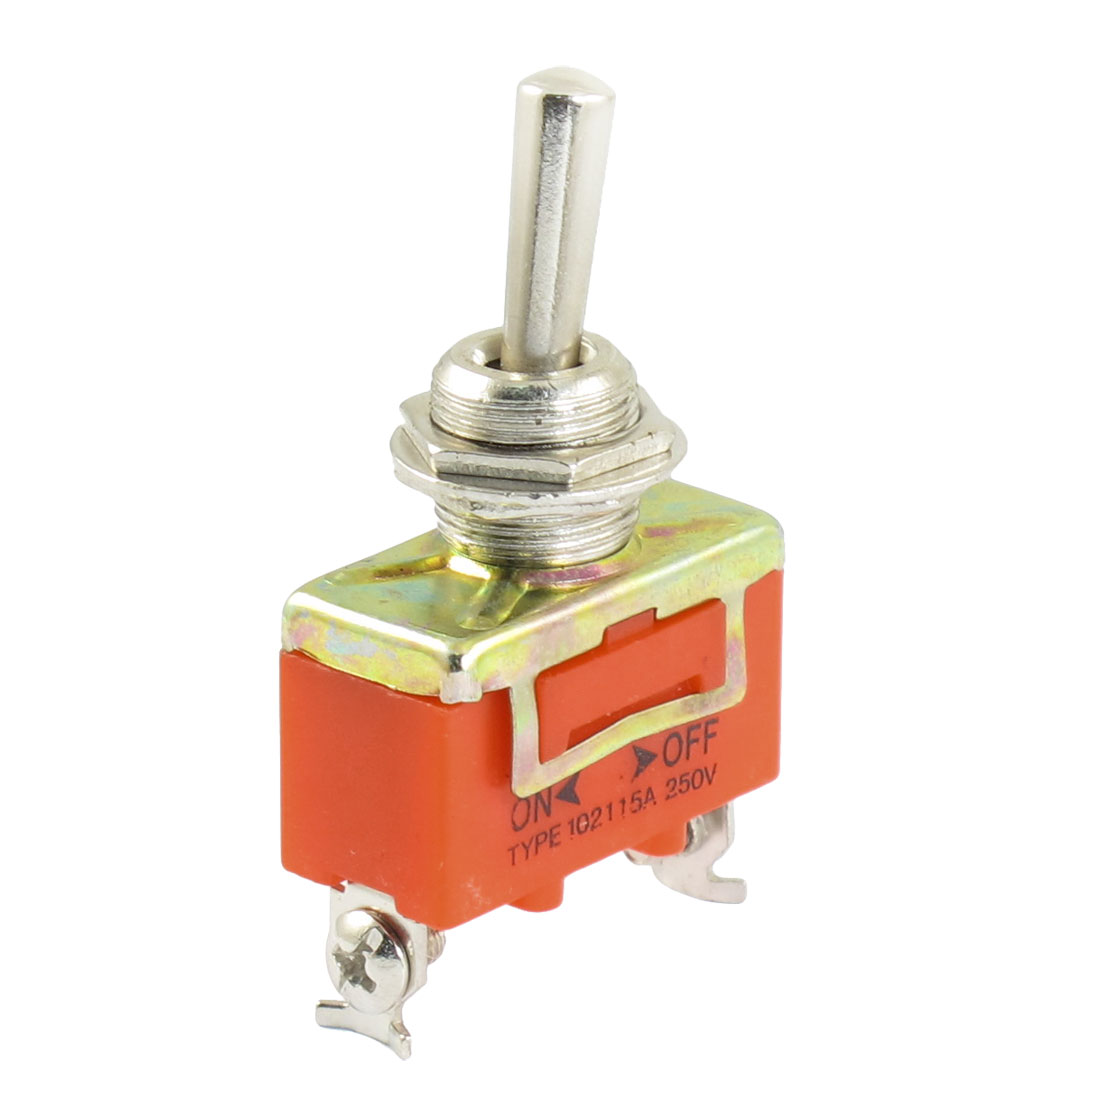 SPST ON/OFF 2 Position 2 Screw Terminals Toggle Switch AC 250V 15A